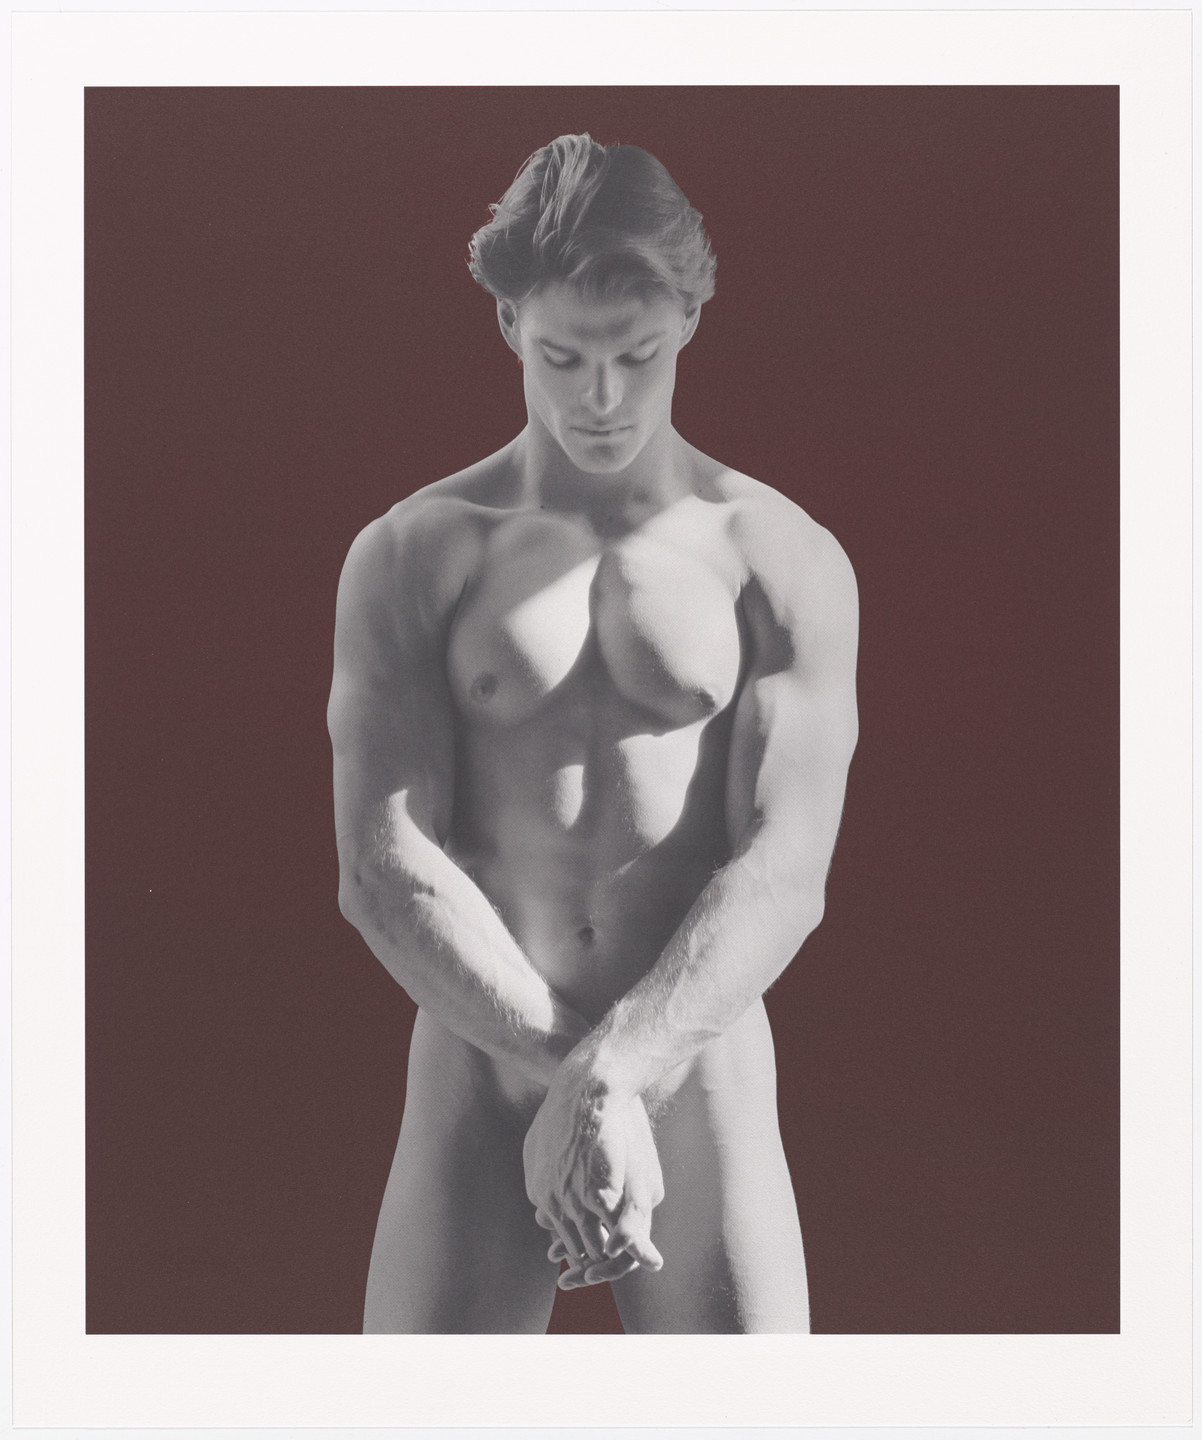 Robert Mapplethorpe. Untitled from America. 1988